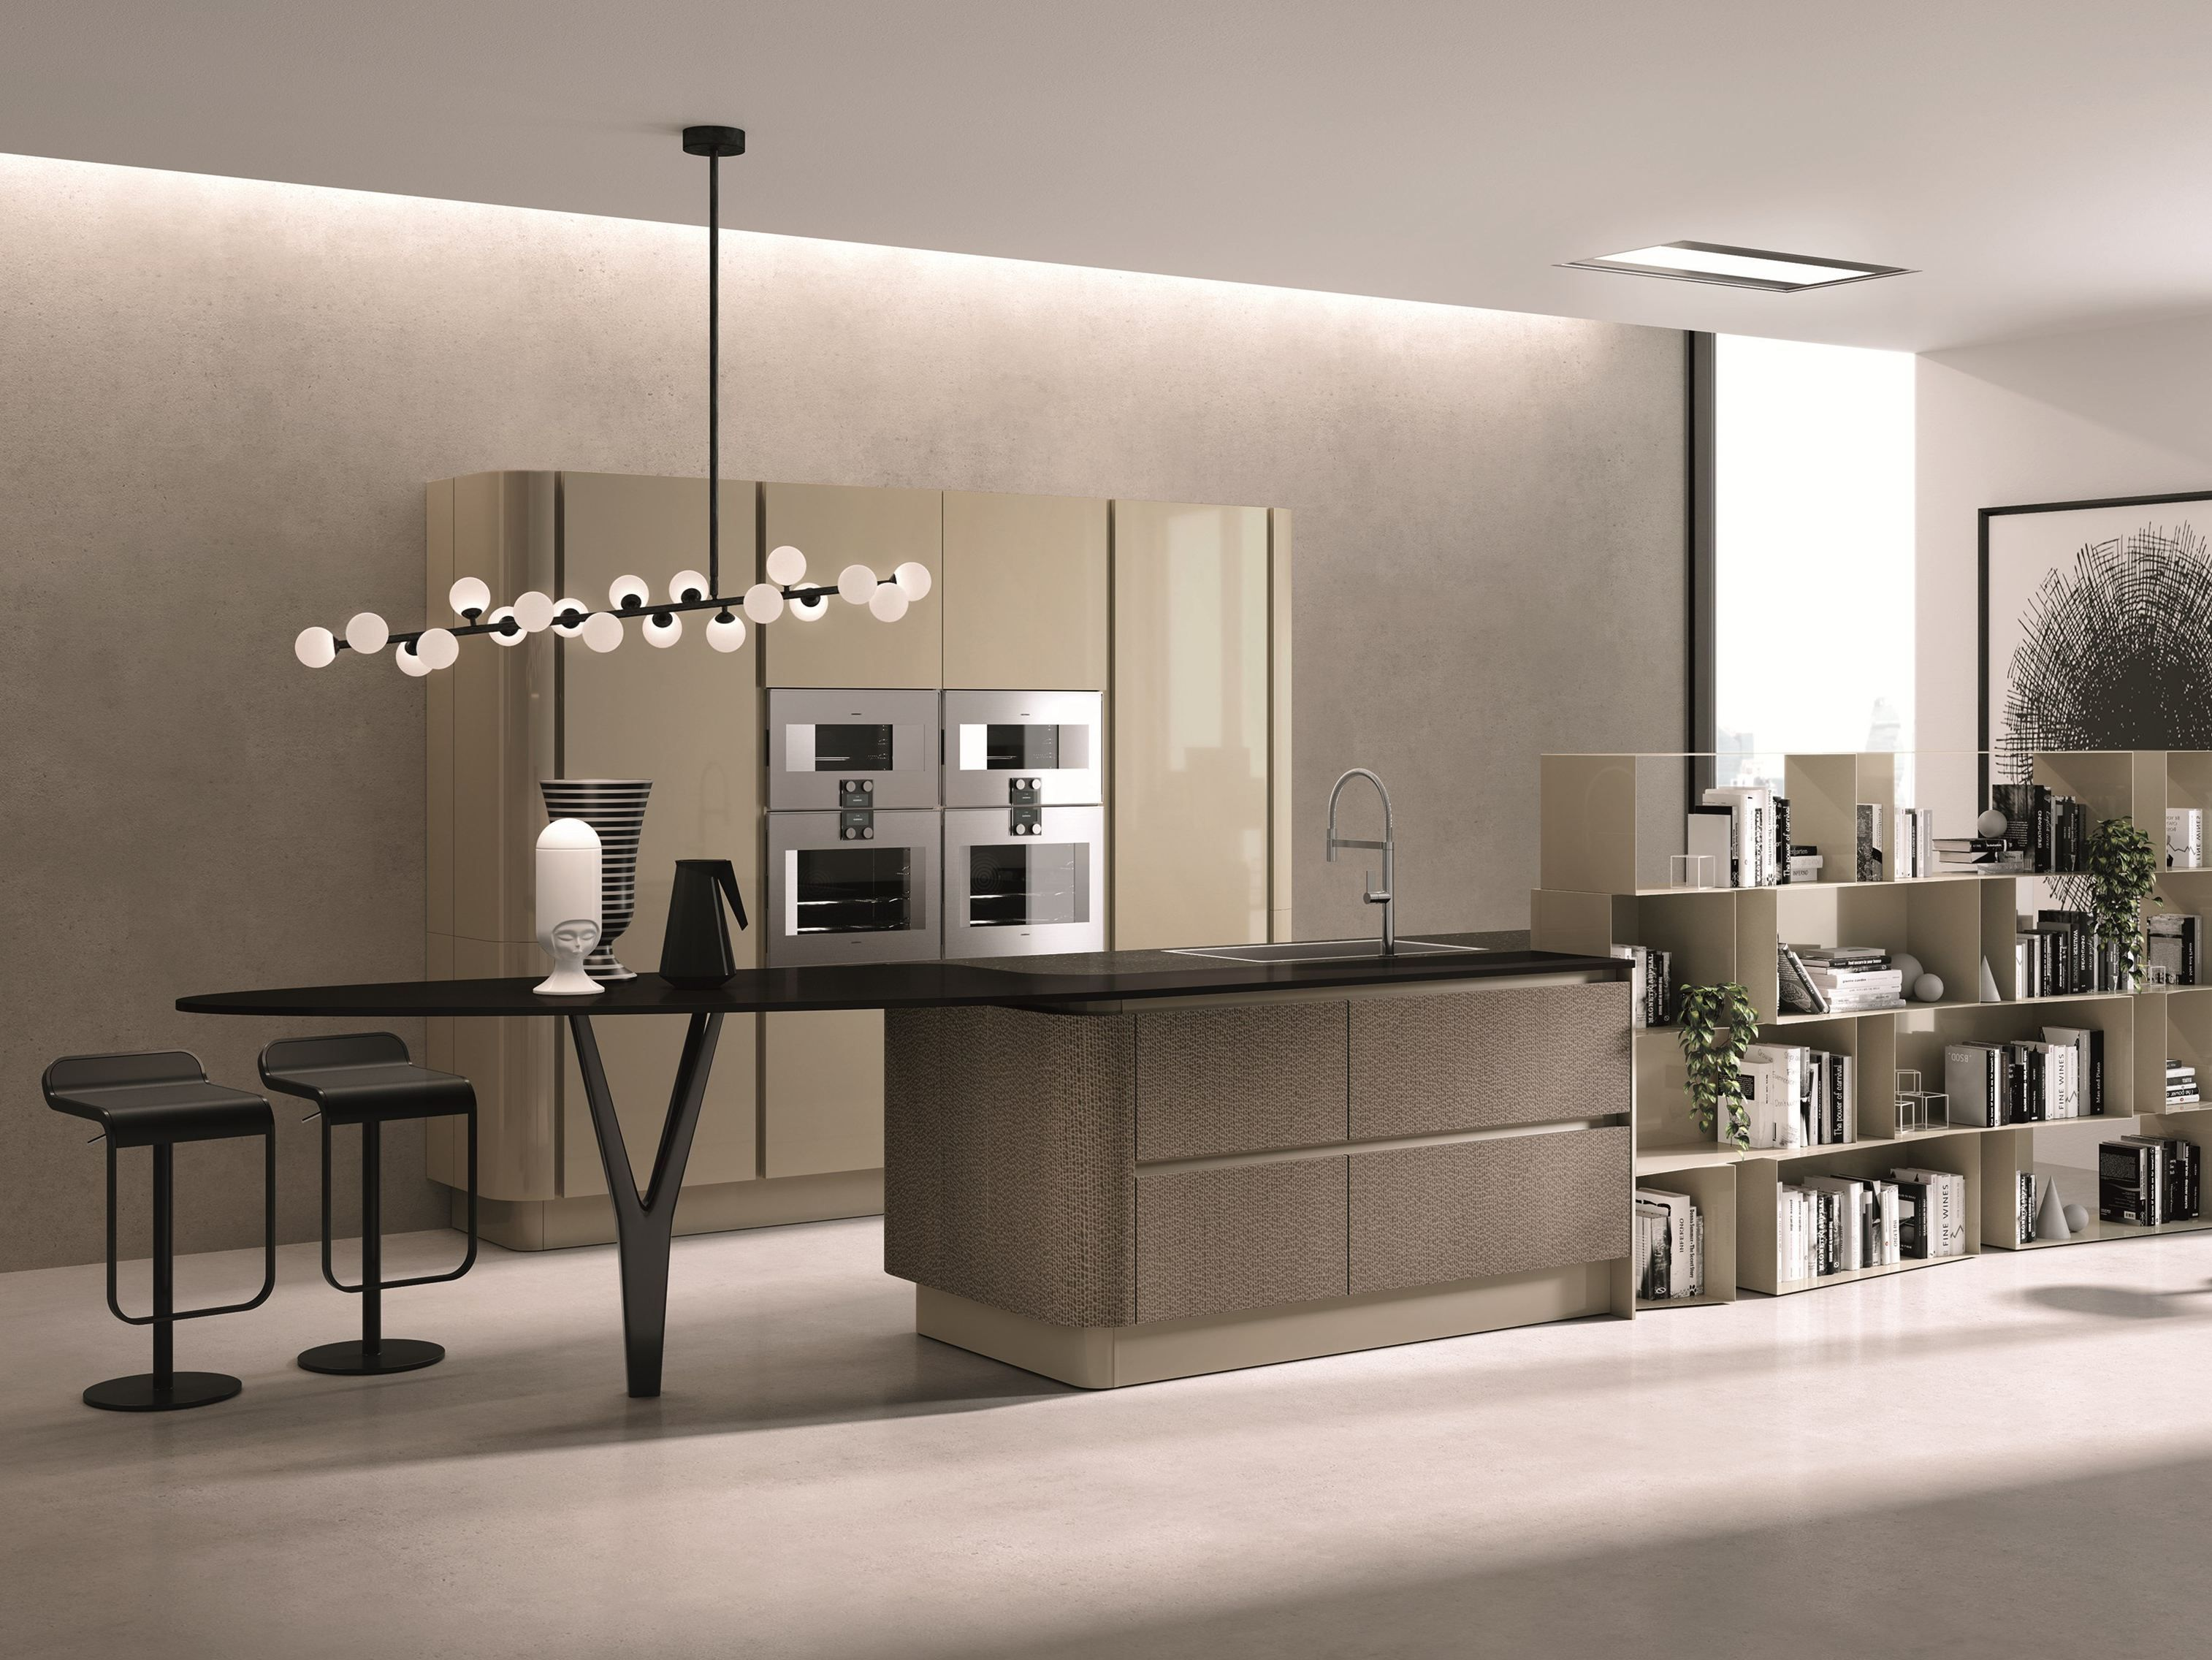 Download The Catalogue And Request Prices Of Domina | Kitchen With Island  By Aster Cucine, · Contemporary KitchensContemporary Kitchen FurnitureModern  ...